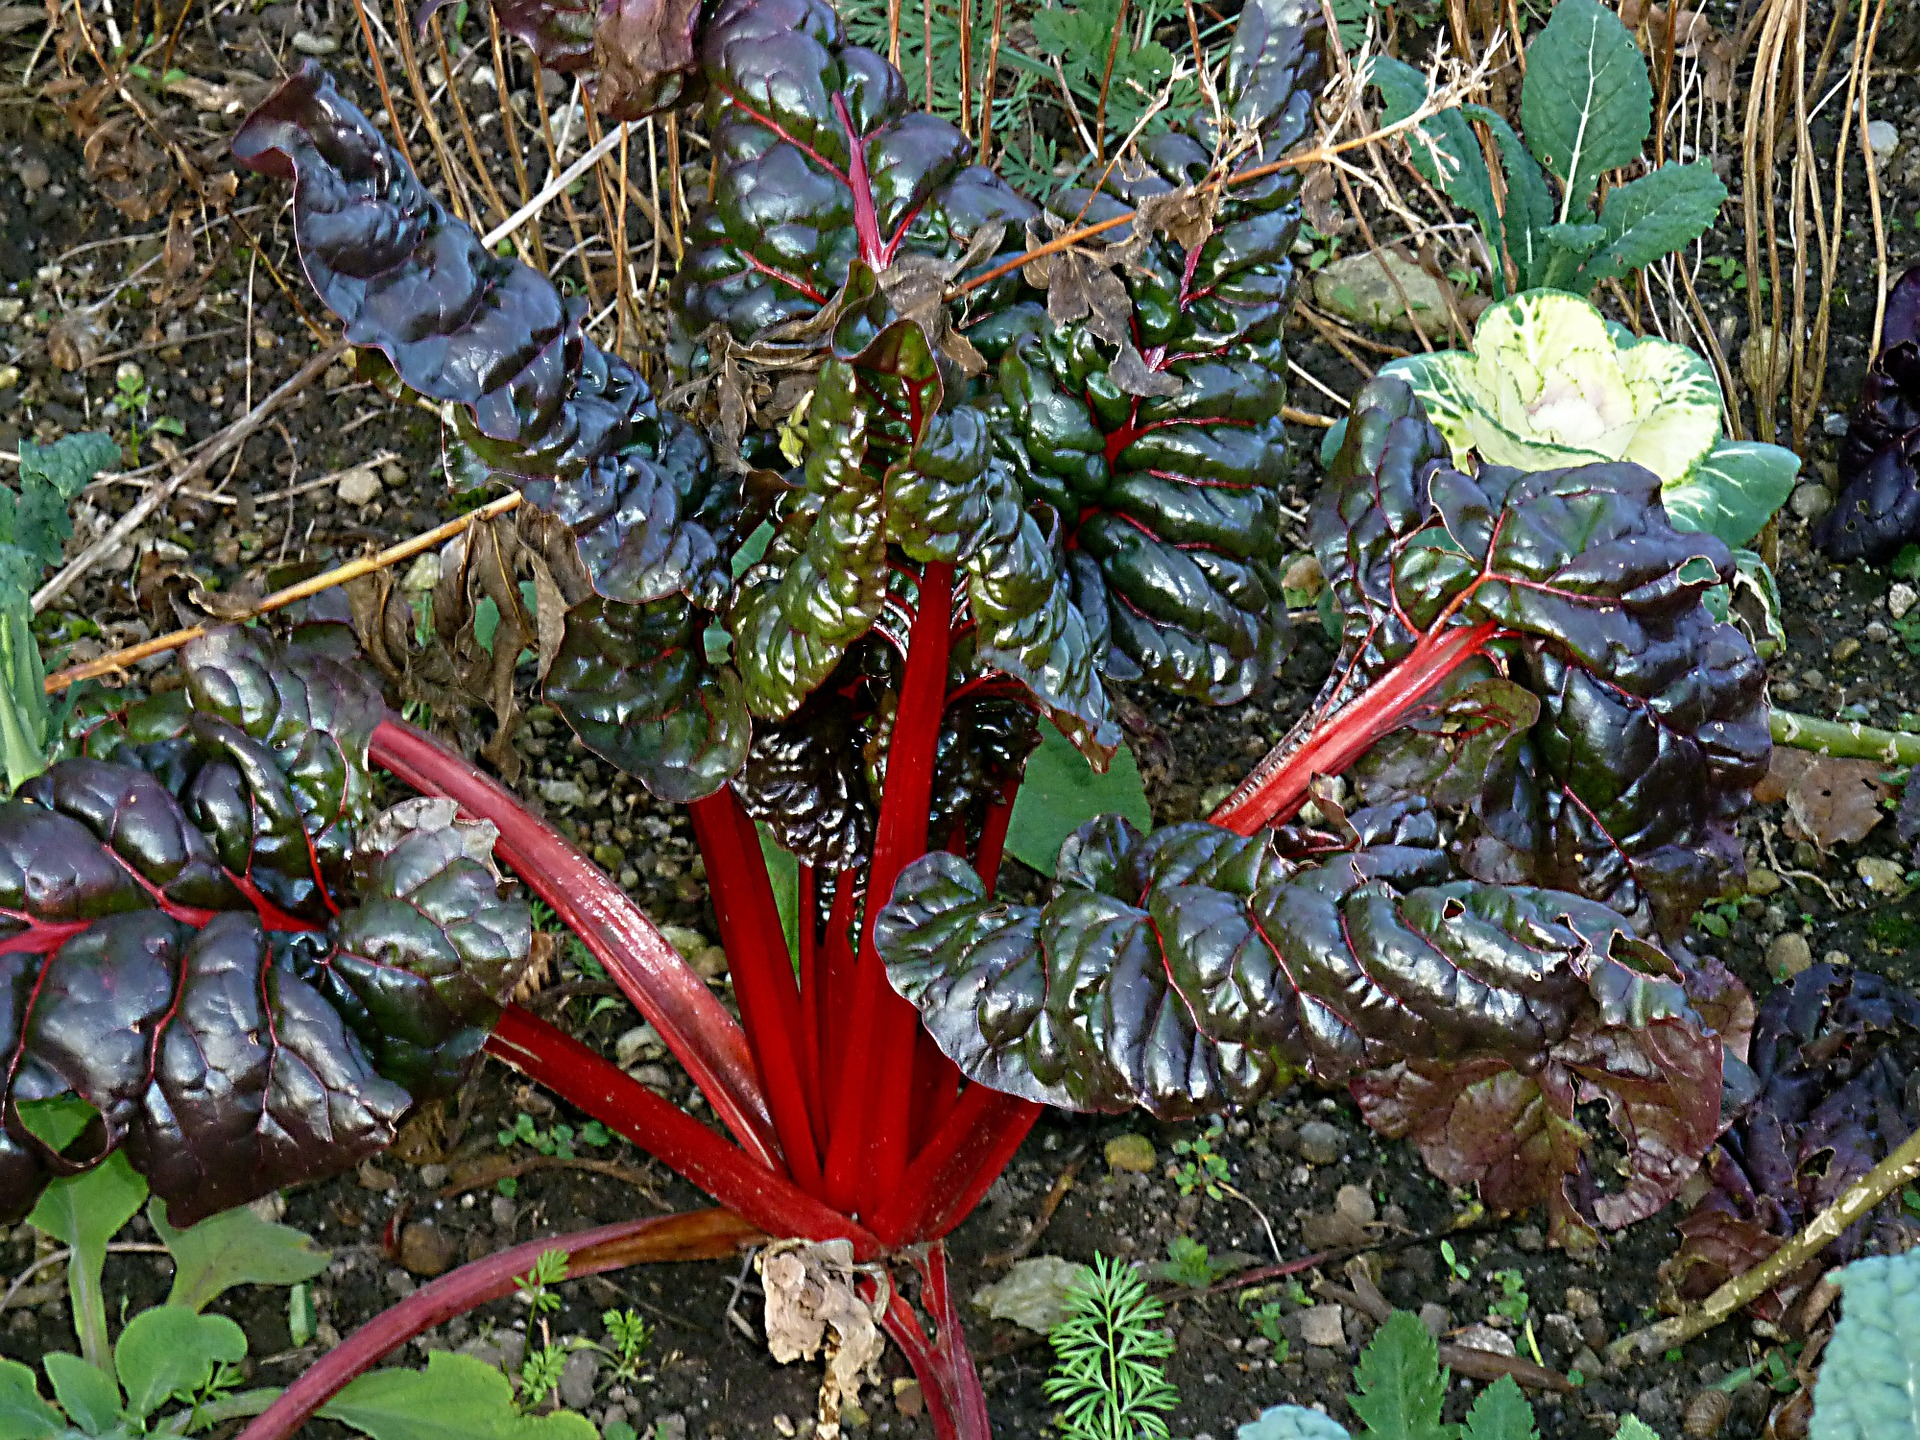 An exotic variety of rhubarb with long red stalks.